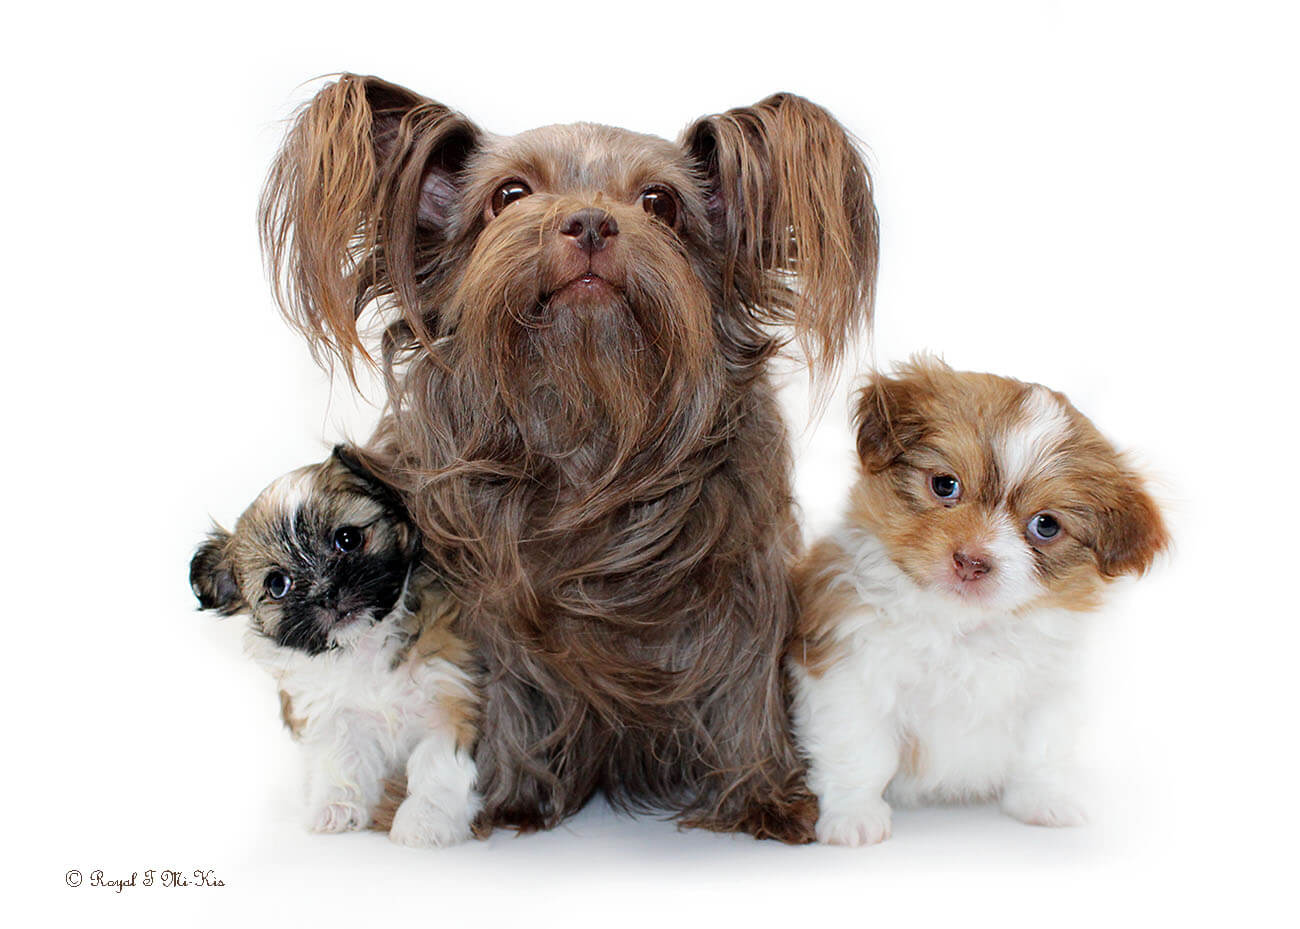 A dark chocolate Mi-Ki dog with her two puppies